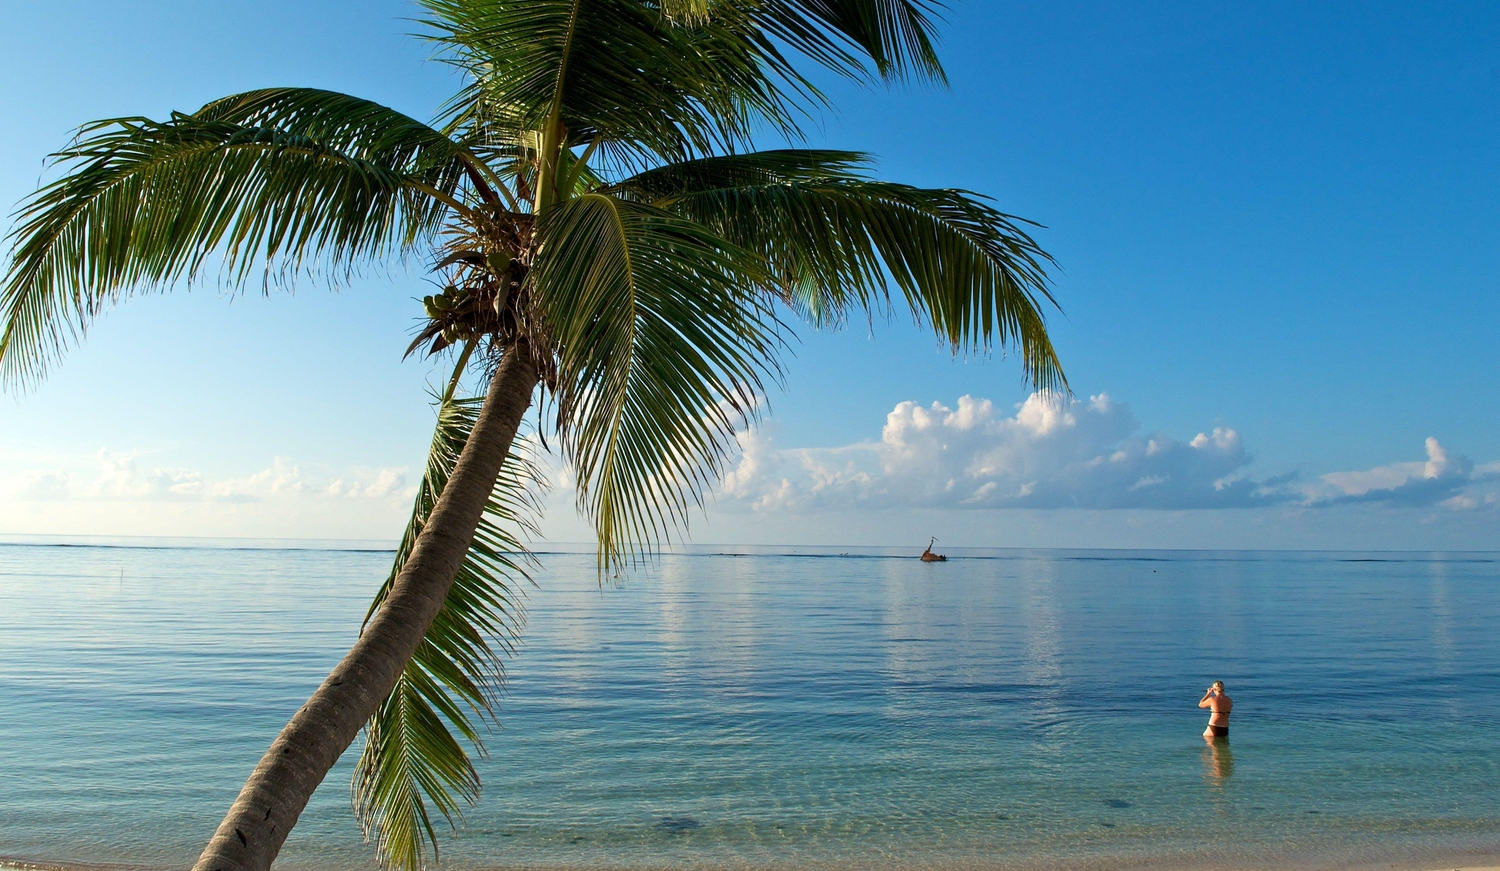 View of a shipwreck on an ocean calm as glass with a single palmtree and bather